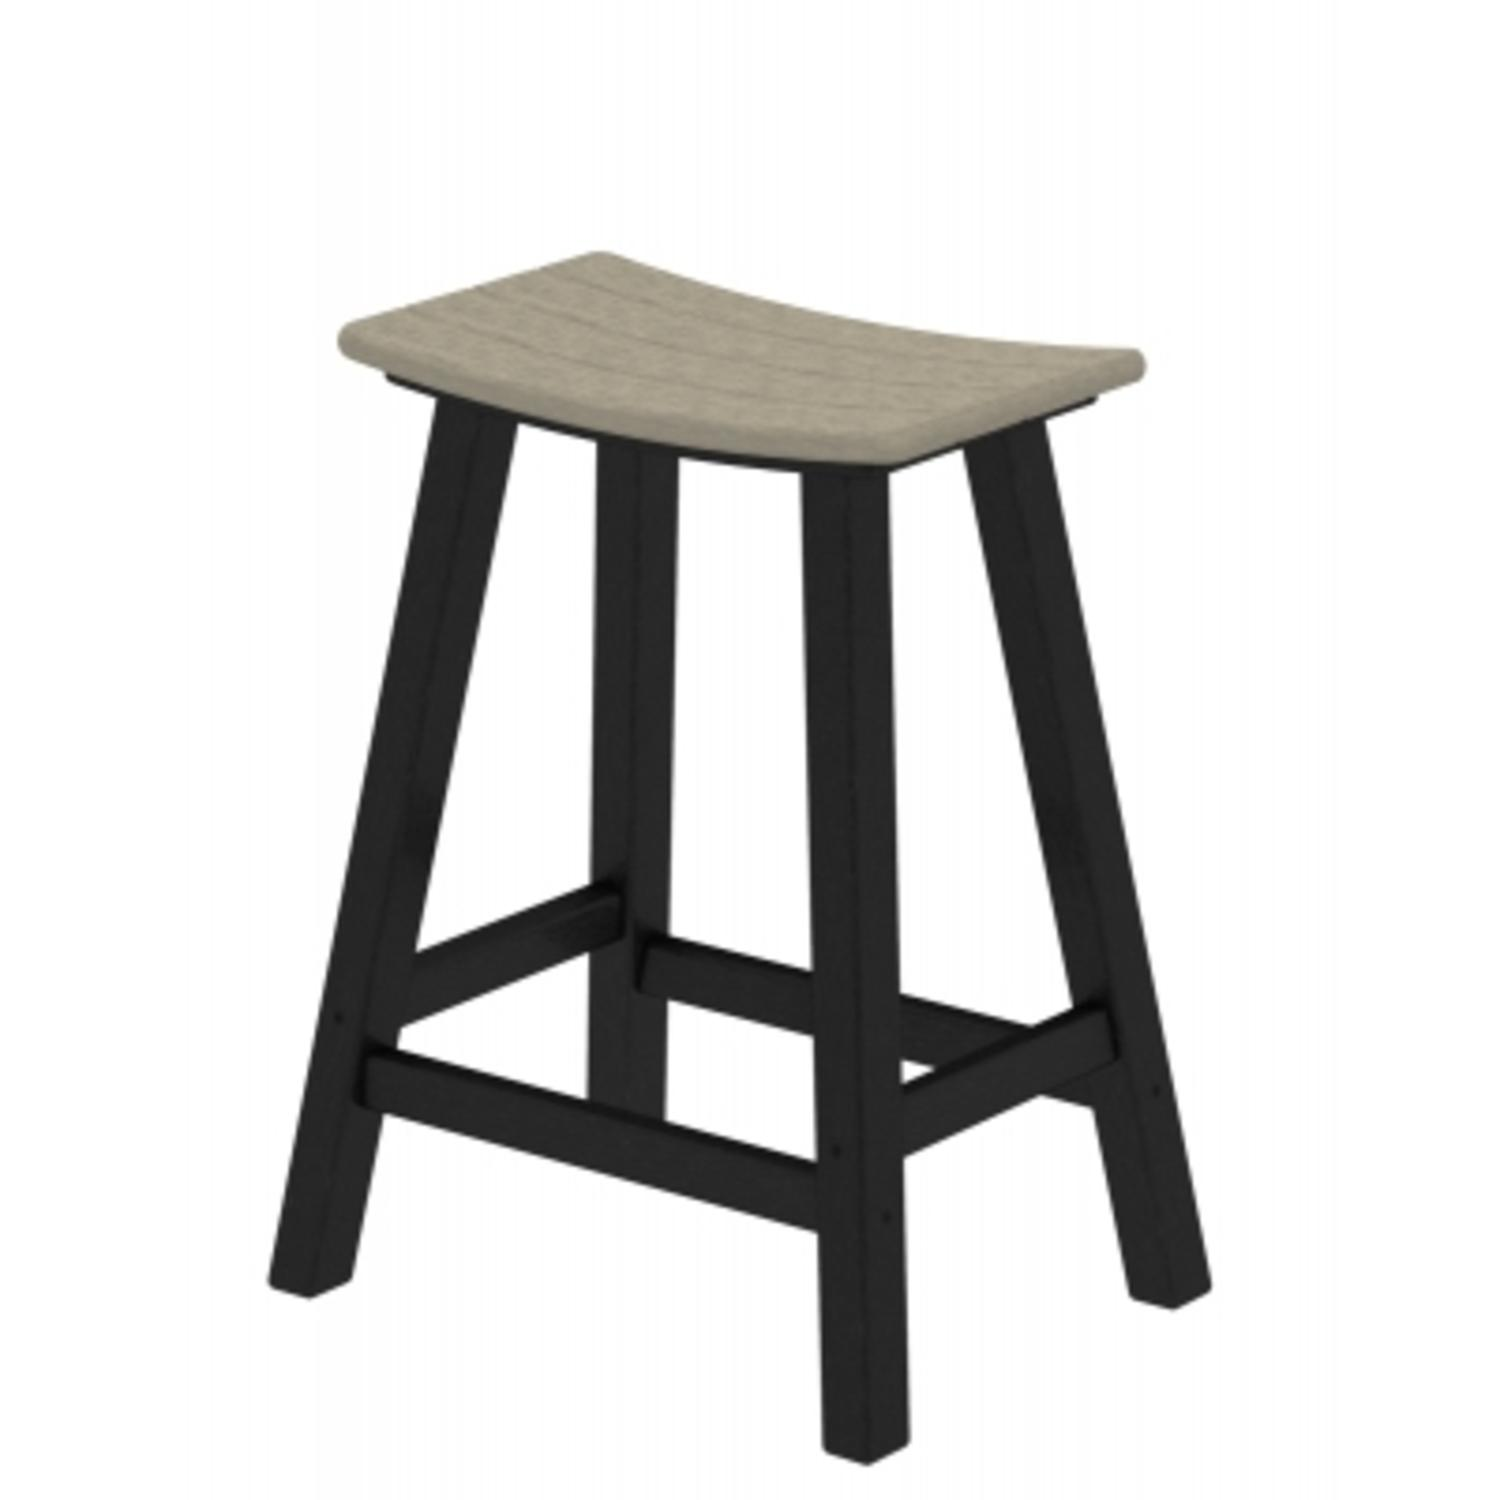 """24.75"""" Recycled Earth-Friendly Curved Outdoor Bar Stool - Sand With Black Frame"""